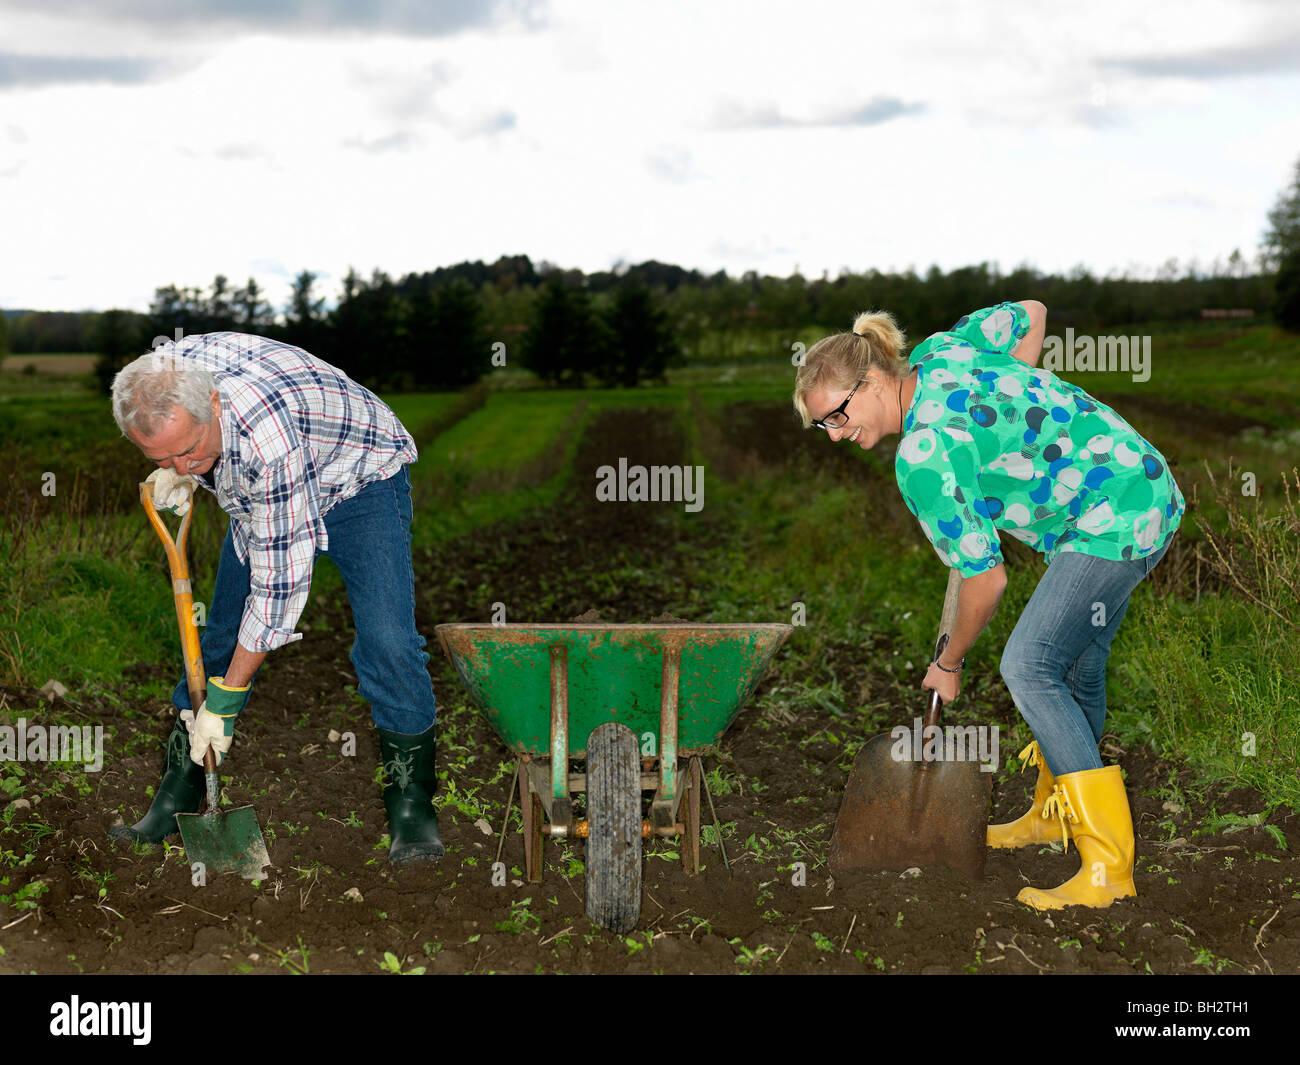 Man and woman shoveling dirt Stock Photo